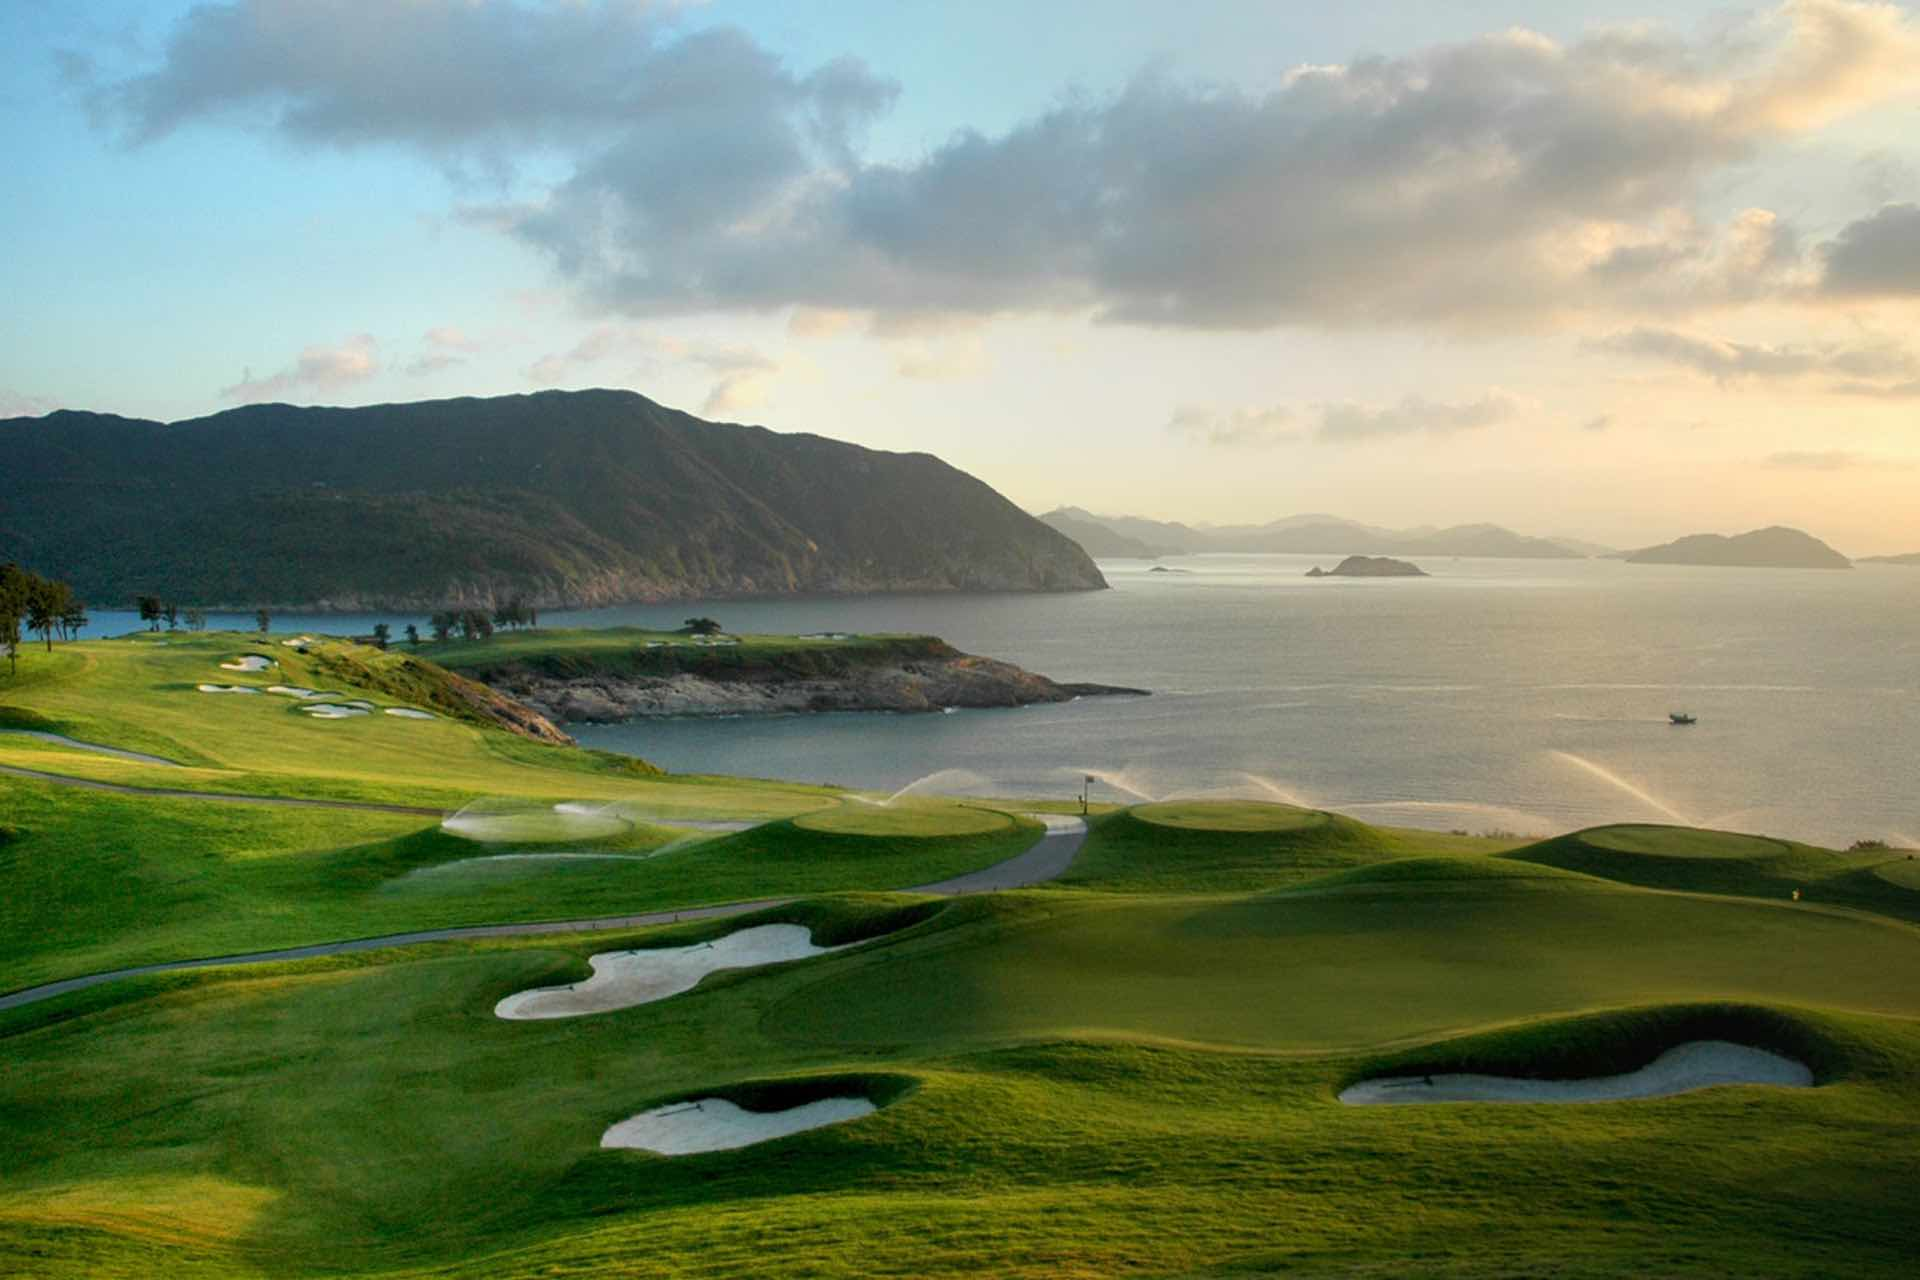 JGTA Season Suspended - Clearwater Bay Golf & Country Club in Hong Kong